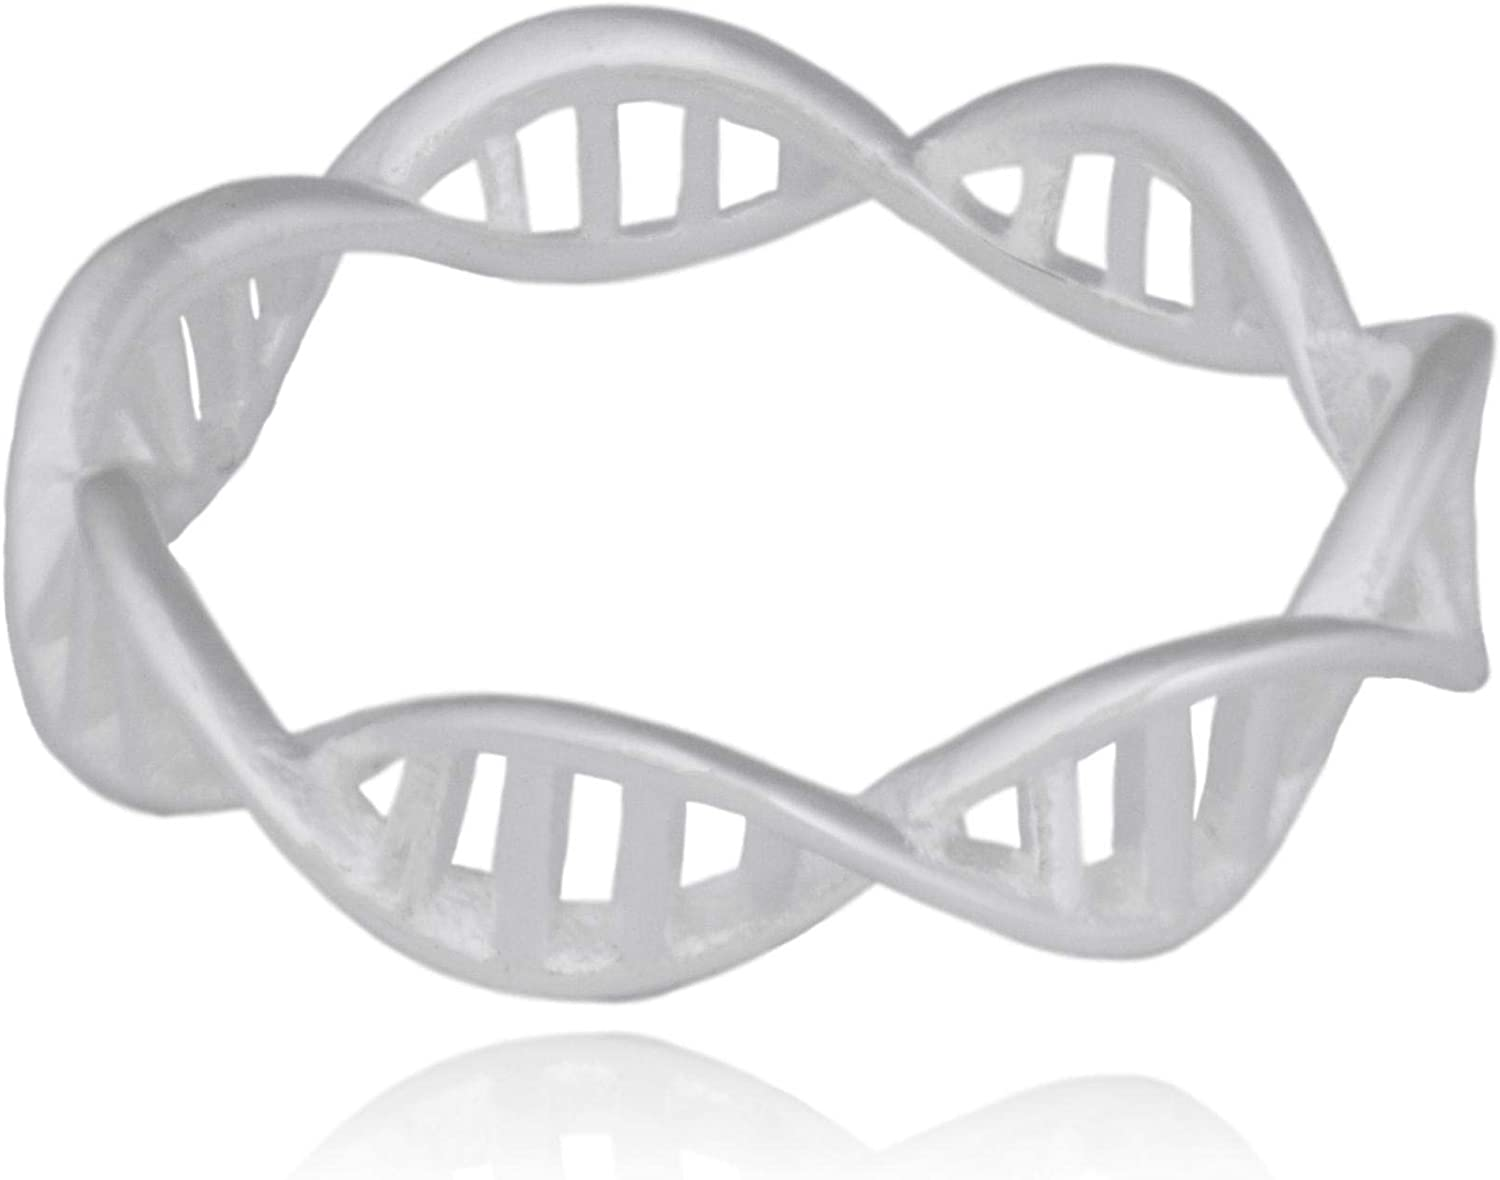 Clayton Jewelry Labs DNA Double Helix DeoxyriboNucleic Acid Science Stainless Steel Ring